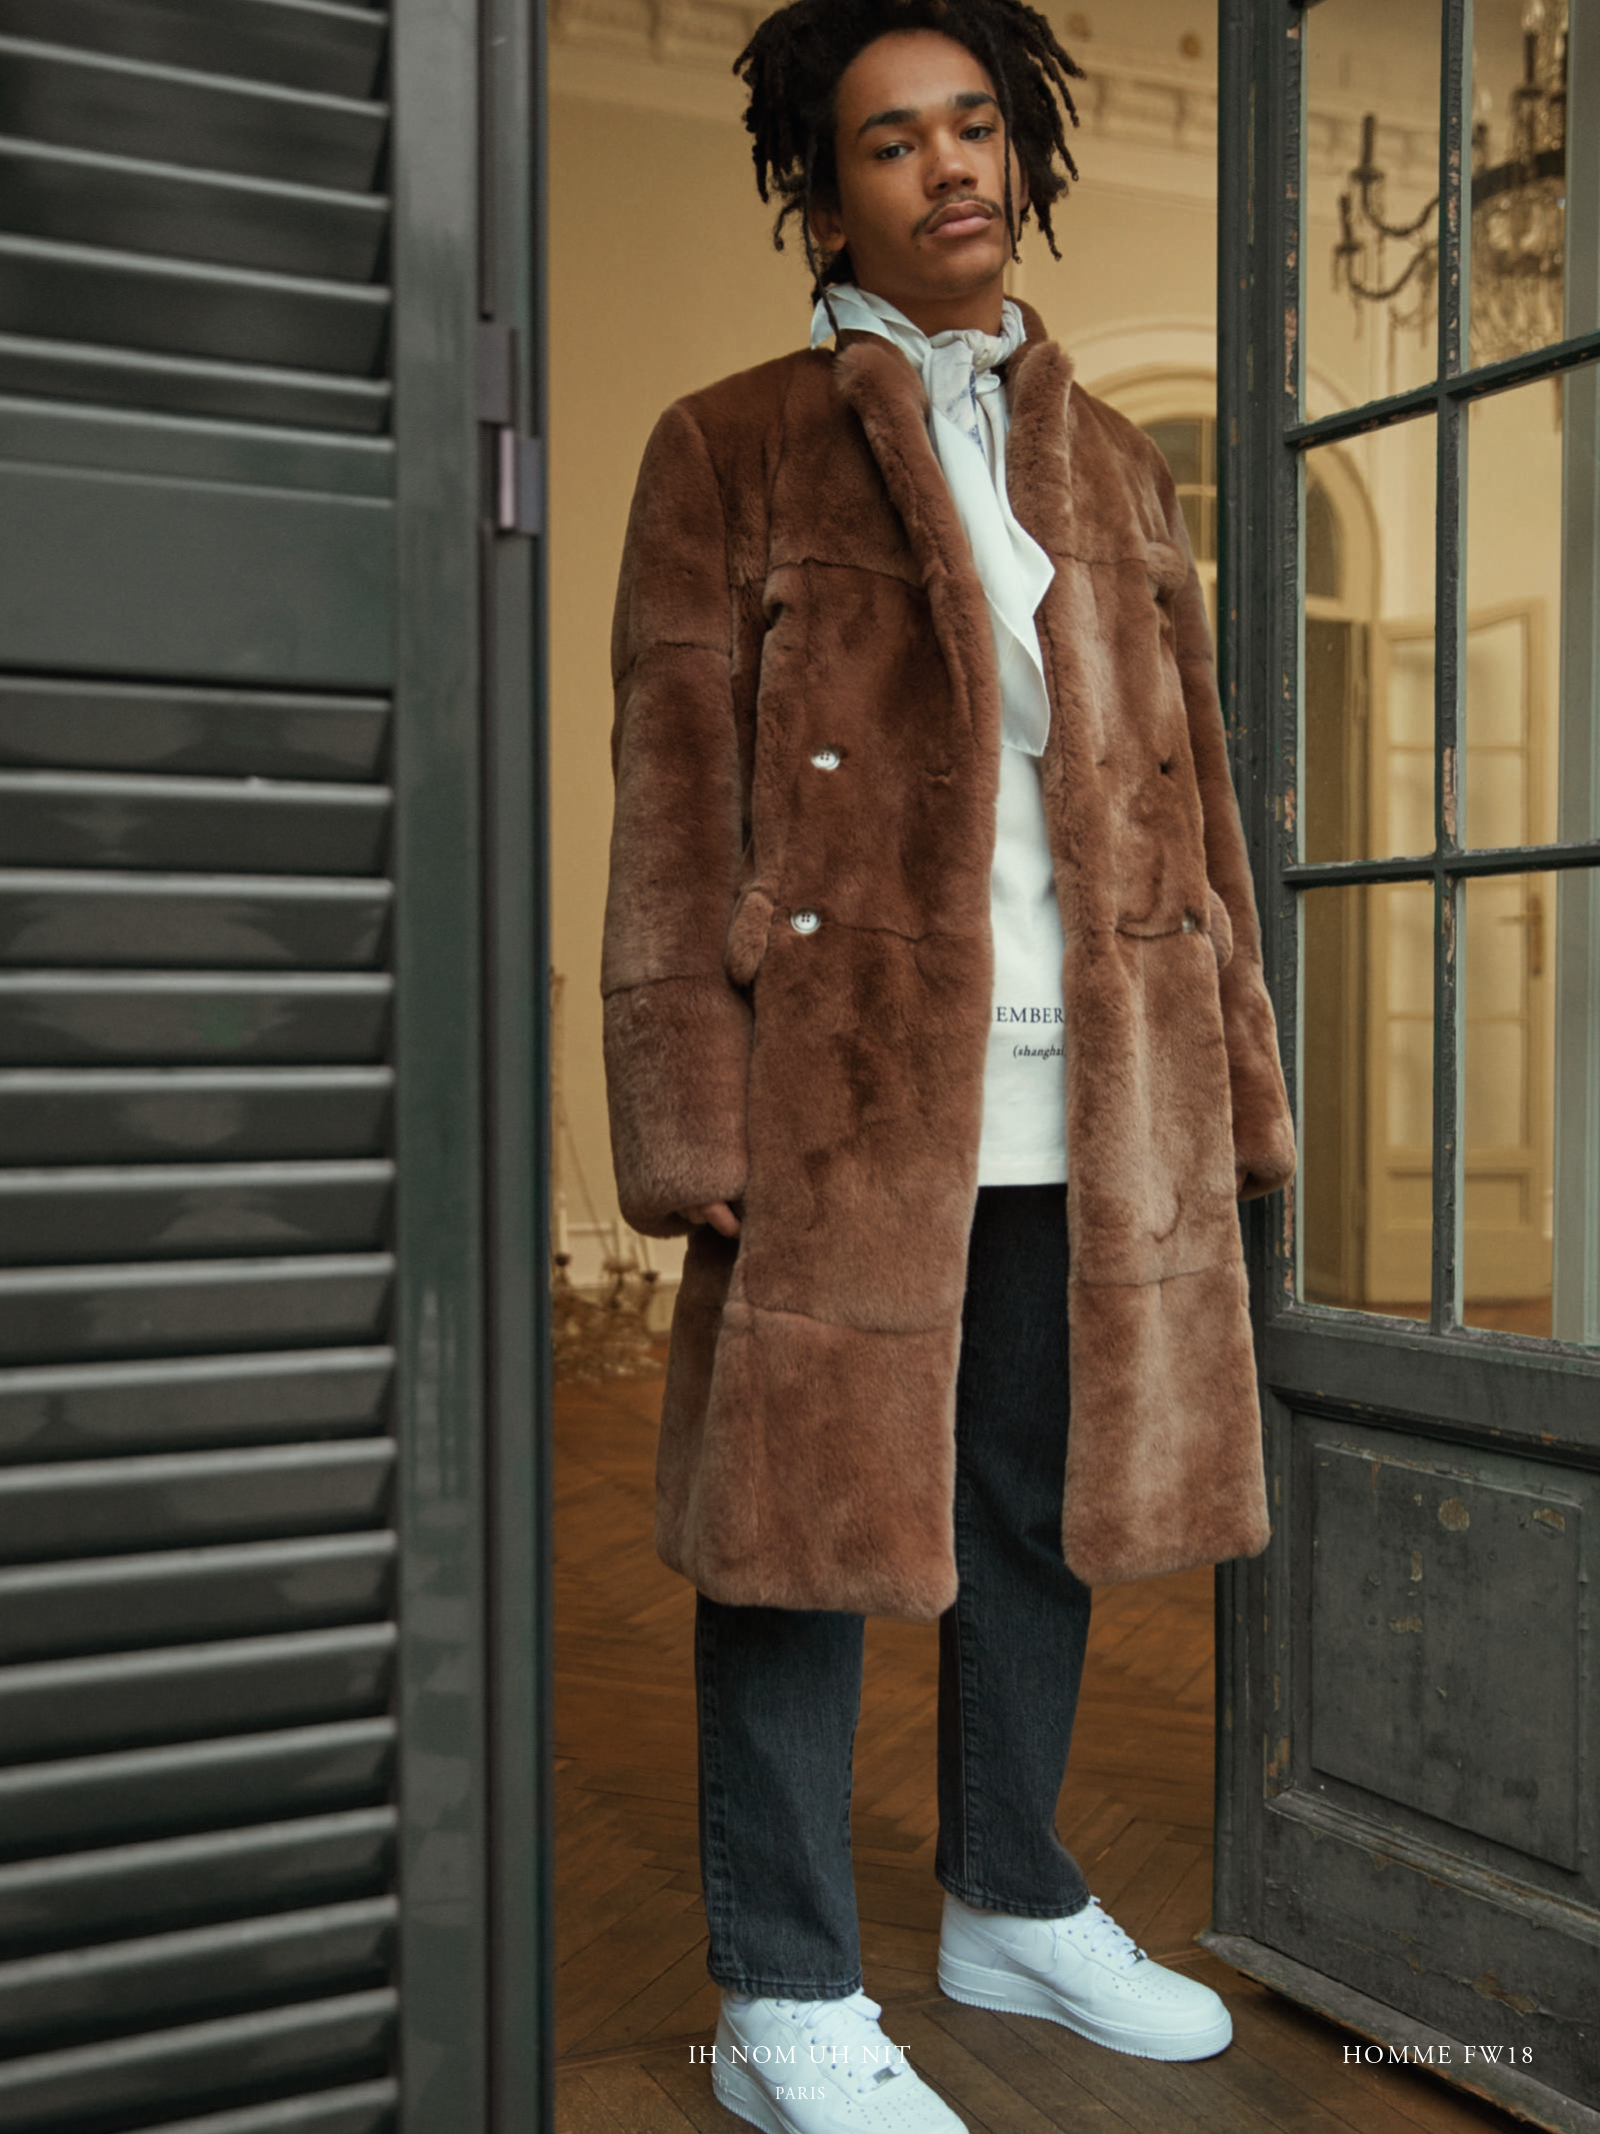 HOMME FW18 LOOK BOOK WEB_compressed_pages-to-jpg-0011.jpg